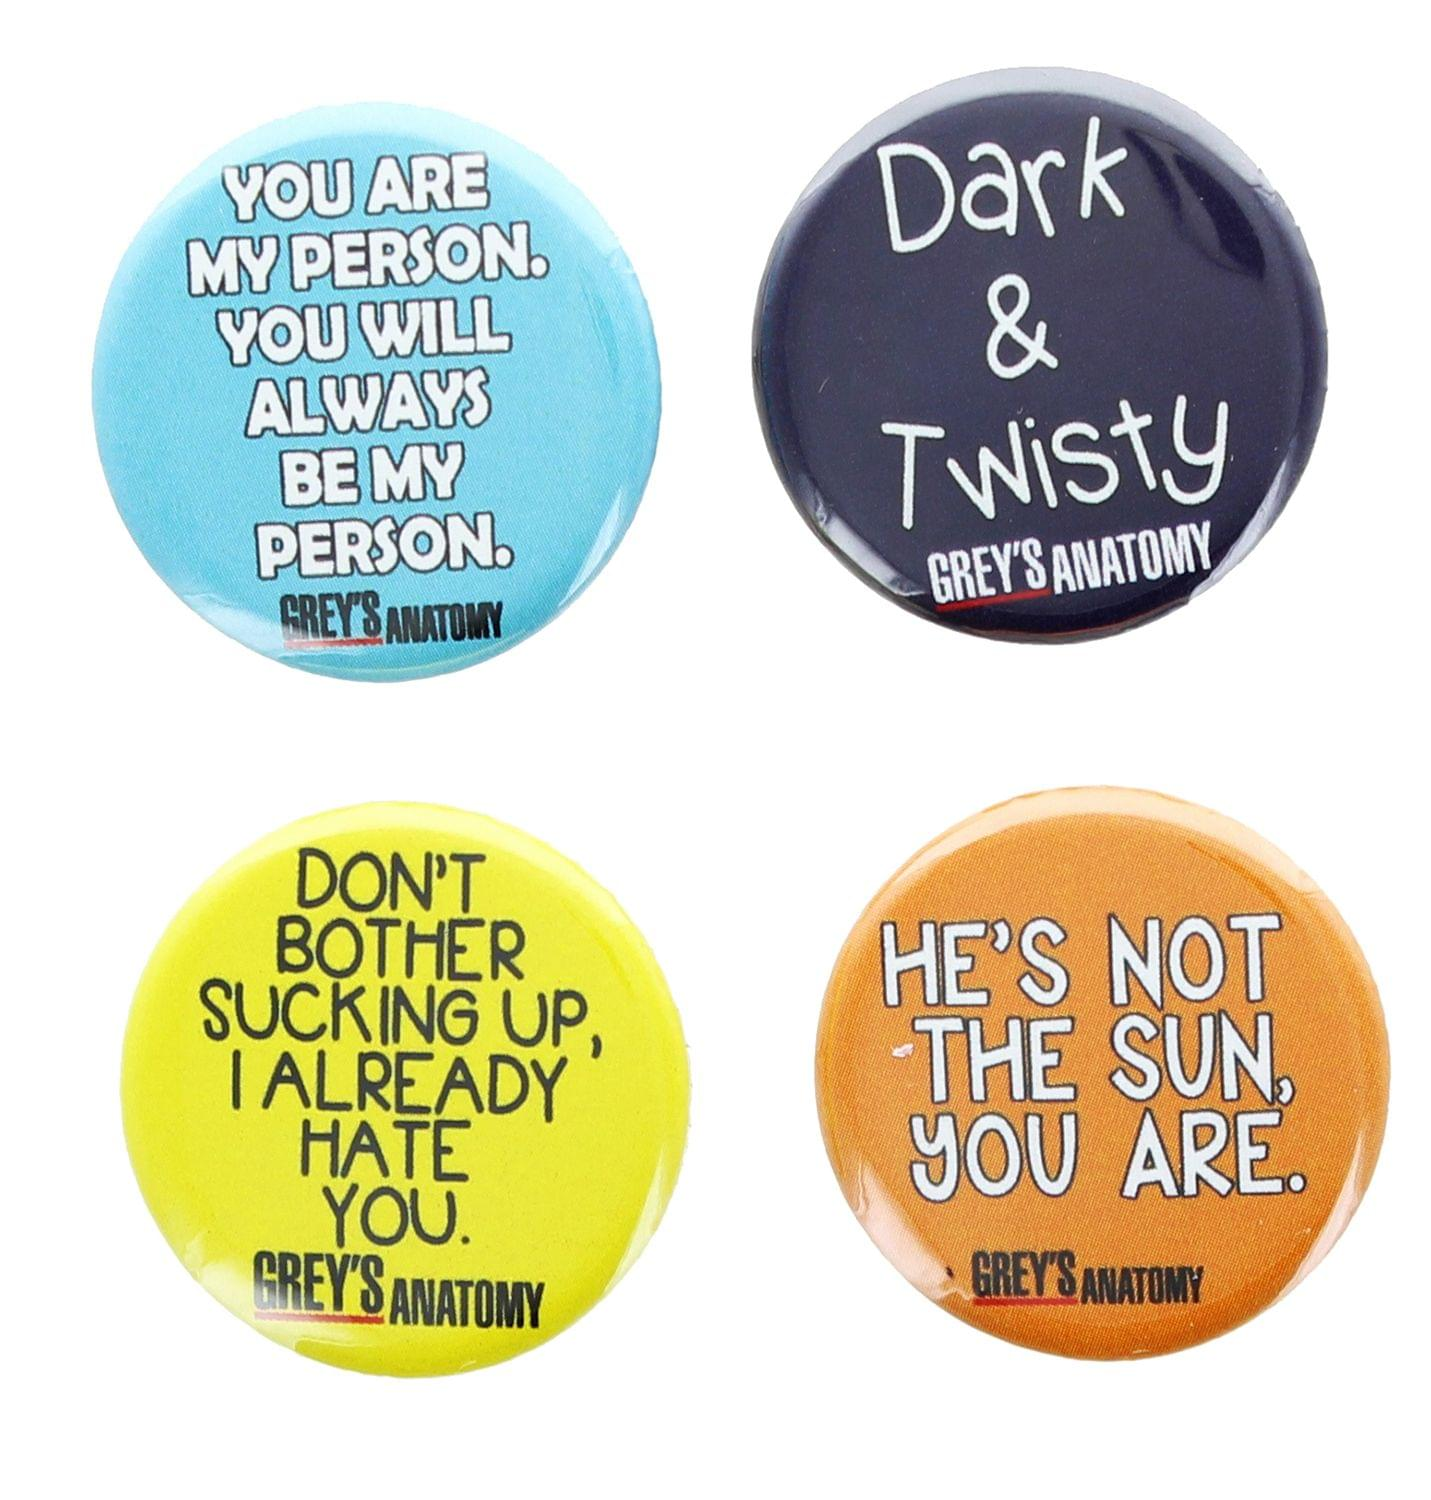 Grey's Anatomy 1.25 Inch Collectible Button Pins - Set of 4